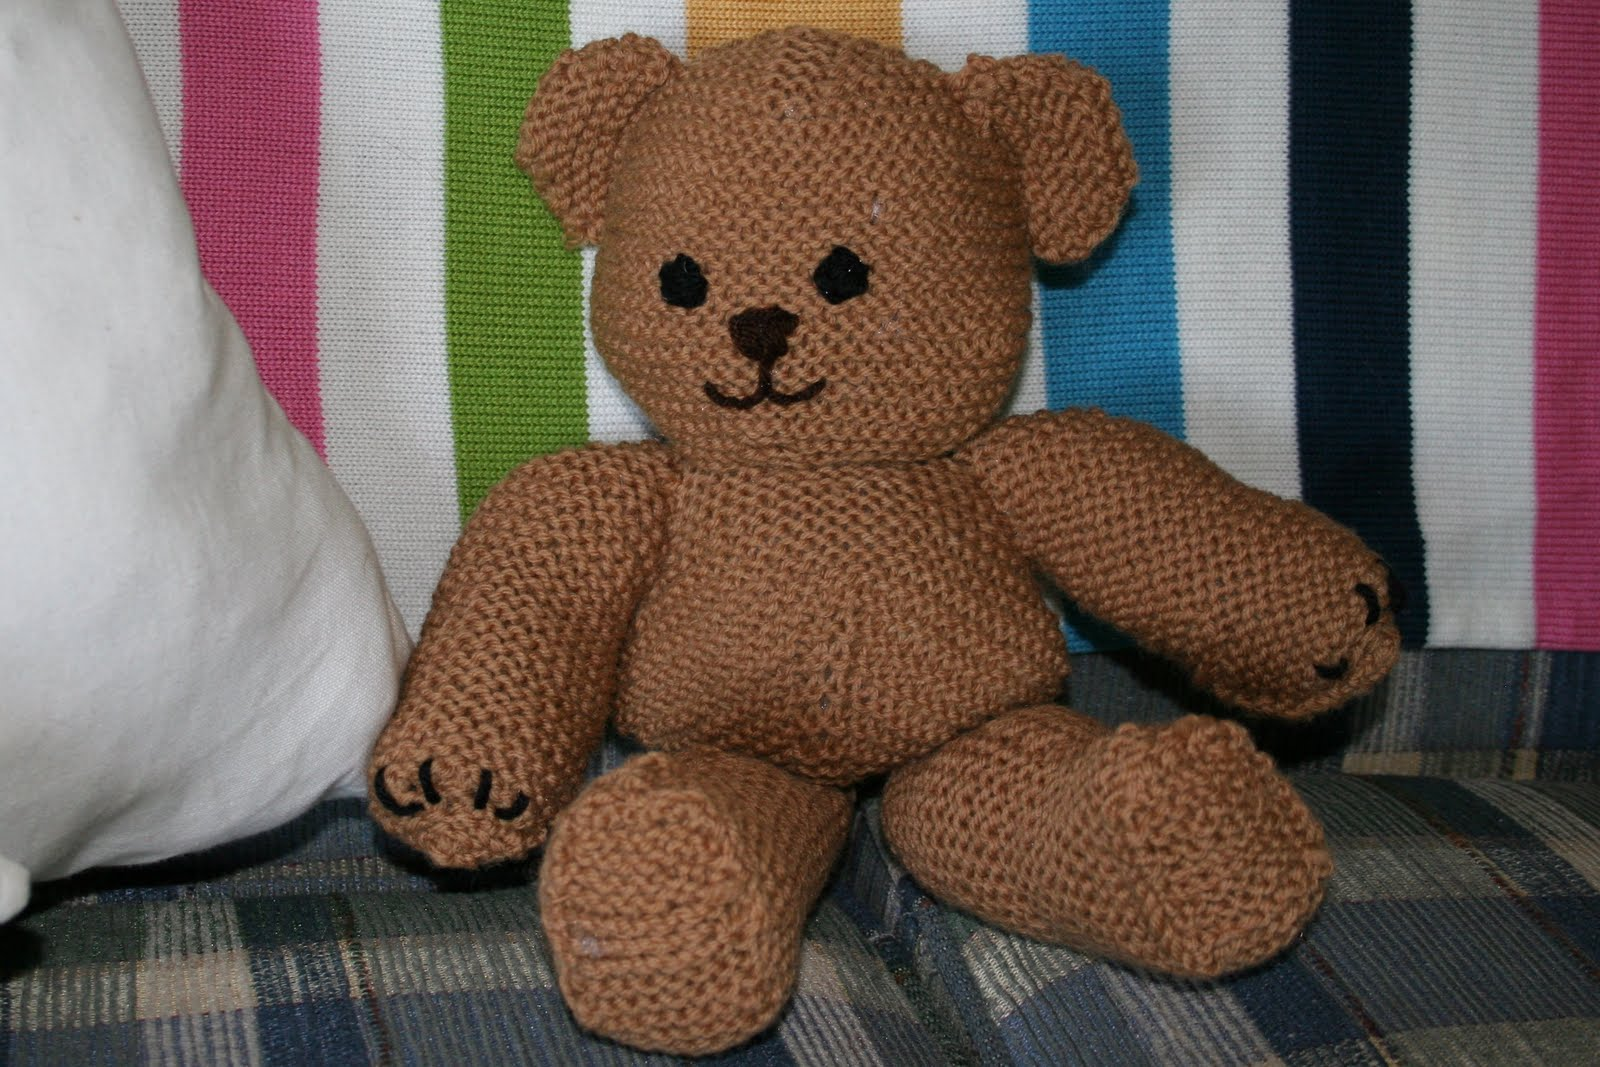 Knitted Teddy Bear Pattern For Charity : Teddy Bear Patterns For Free To Knit Sew Or Crochet   USF Bloggers Planet